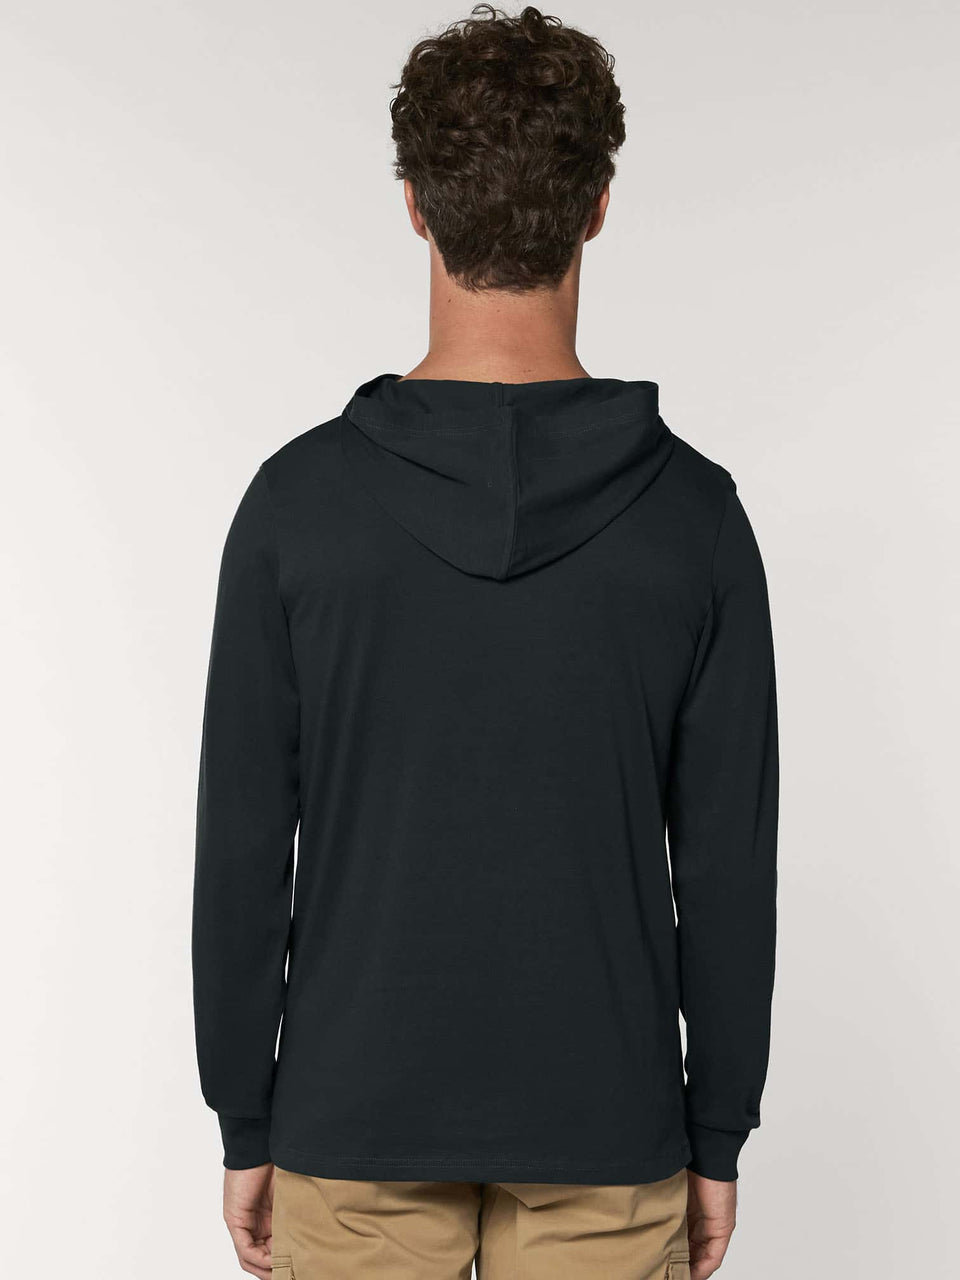 Bufo Alvarius Made To Order Men Hoddie Long Sleeve T- shirt - Black